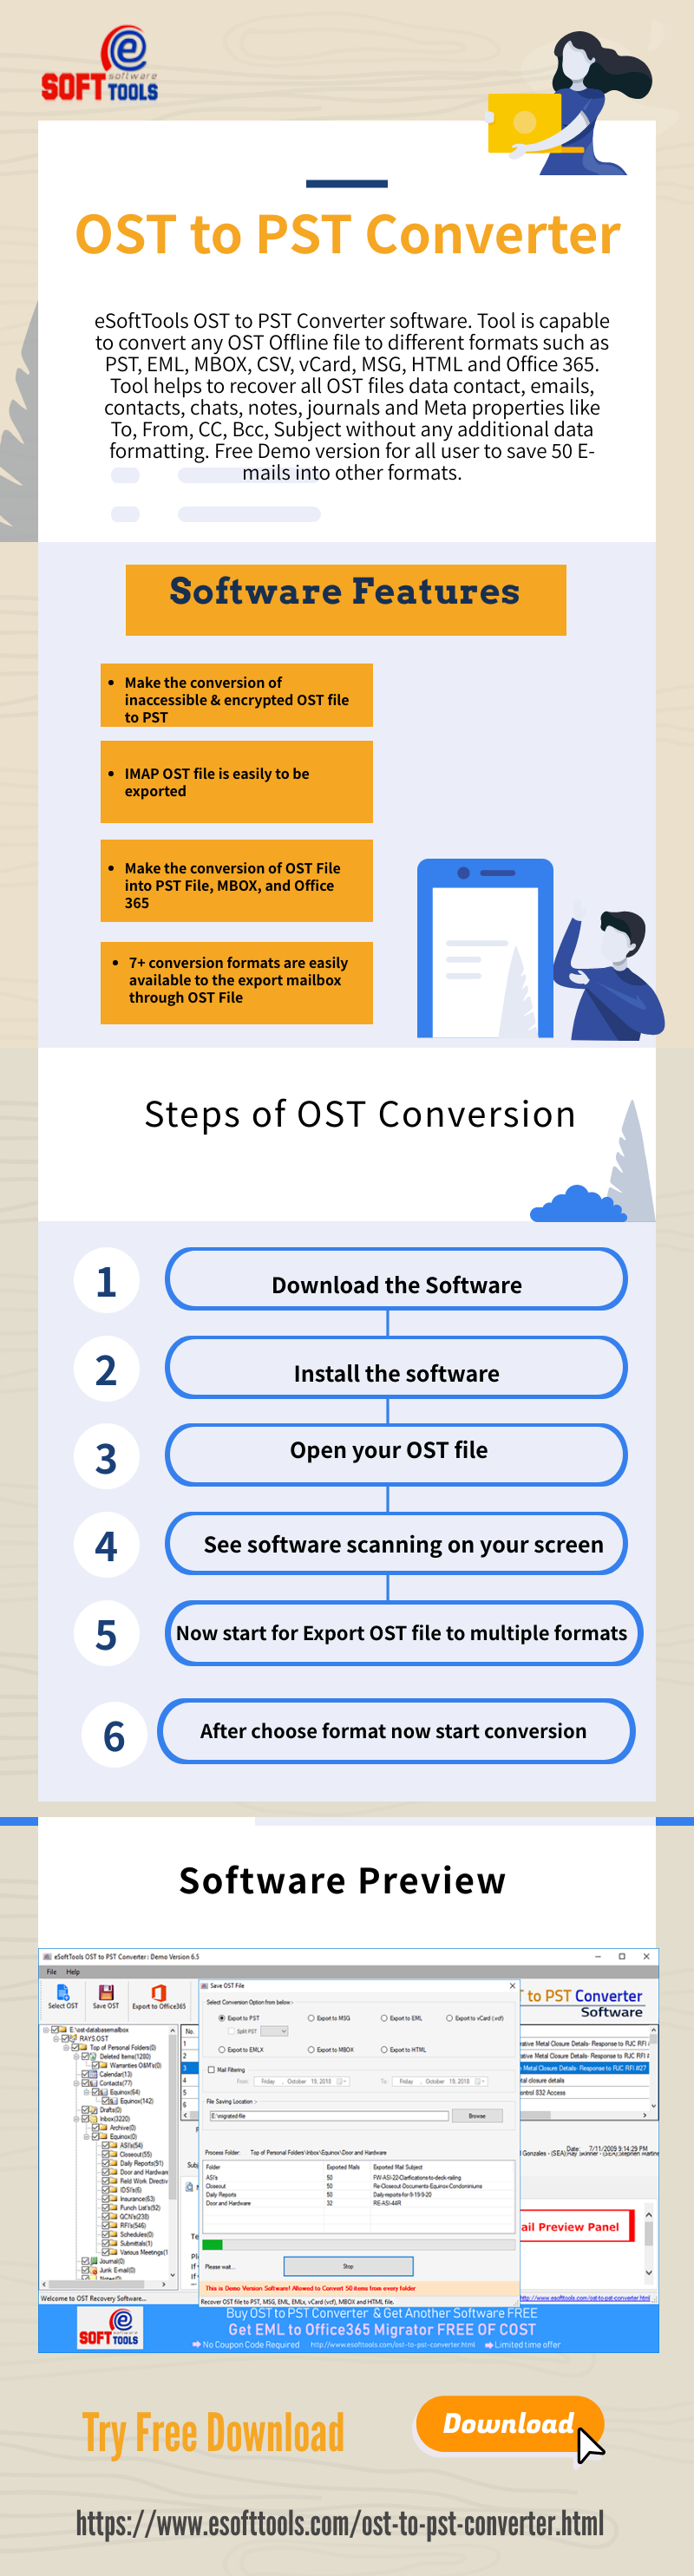 How to export OST to PST files?